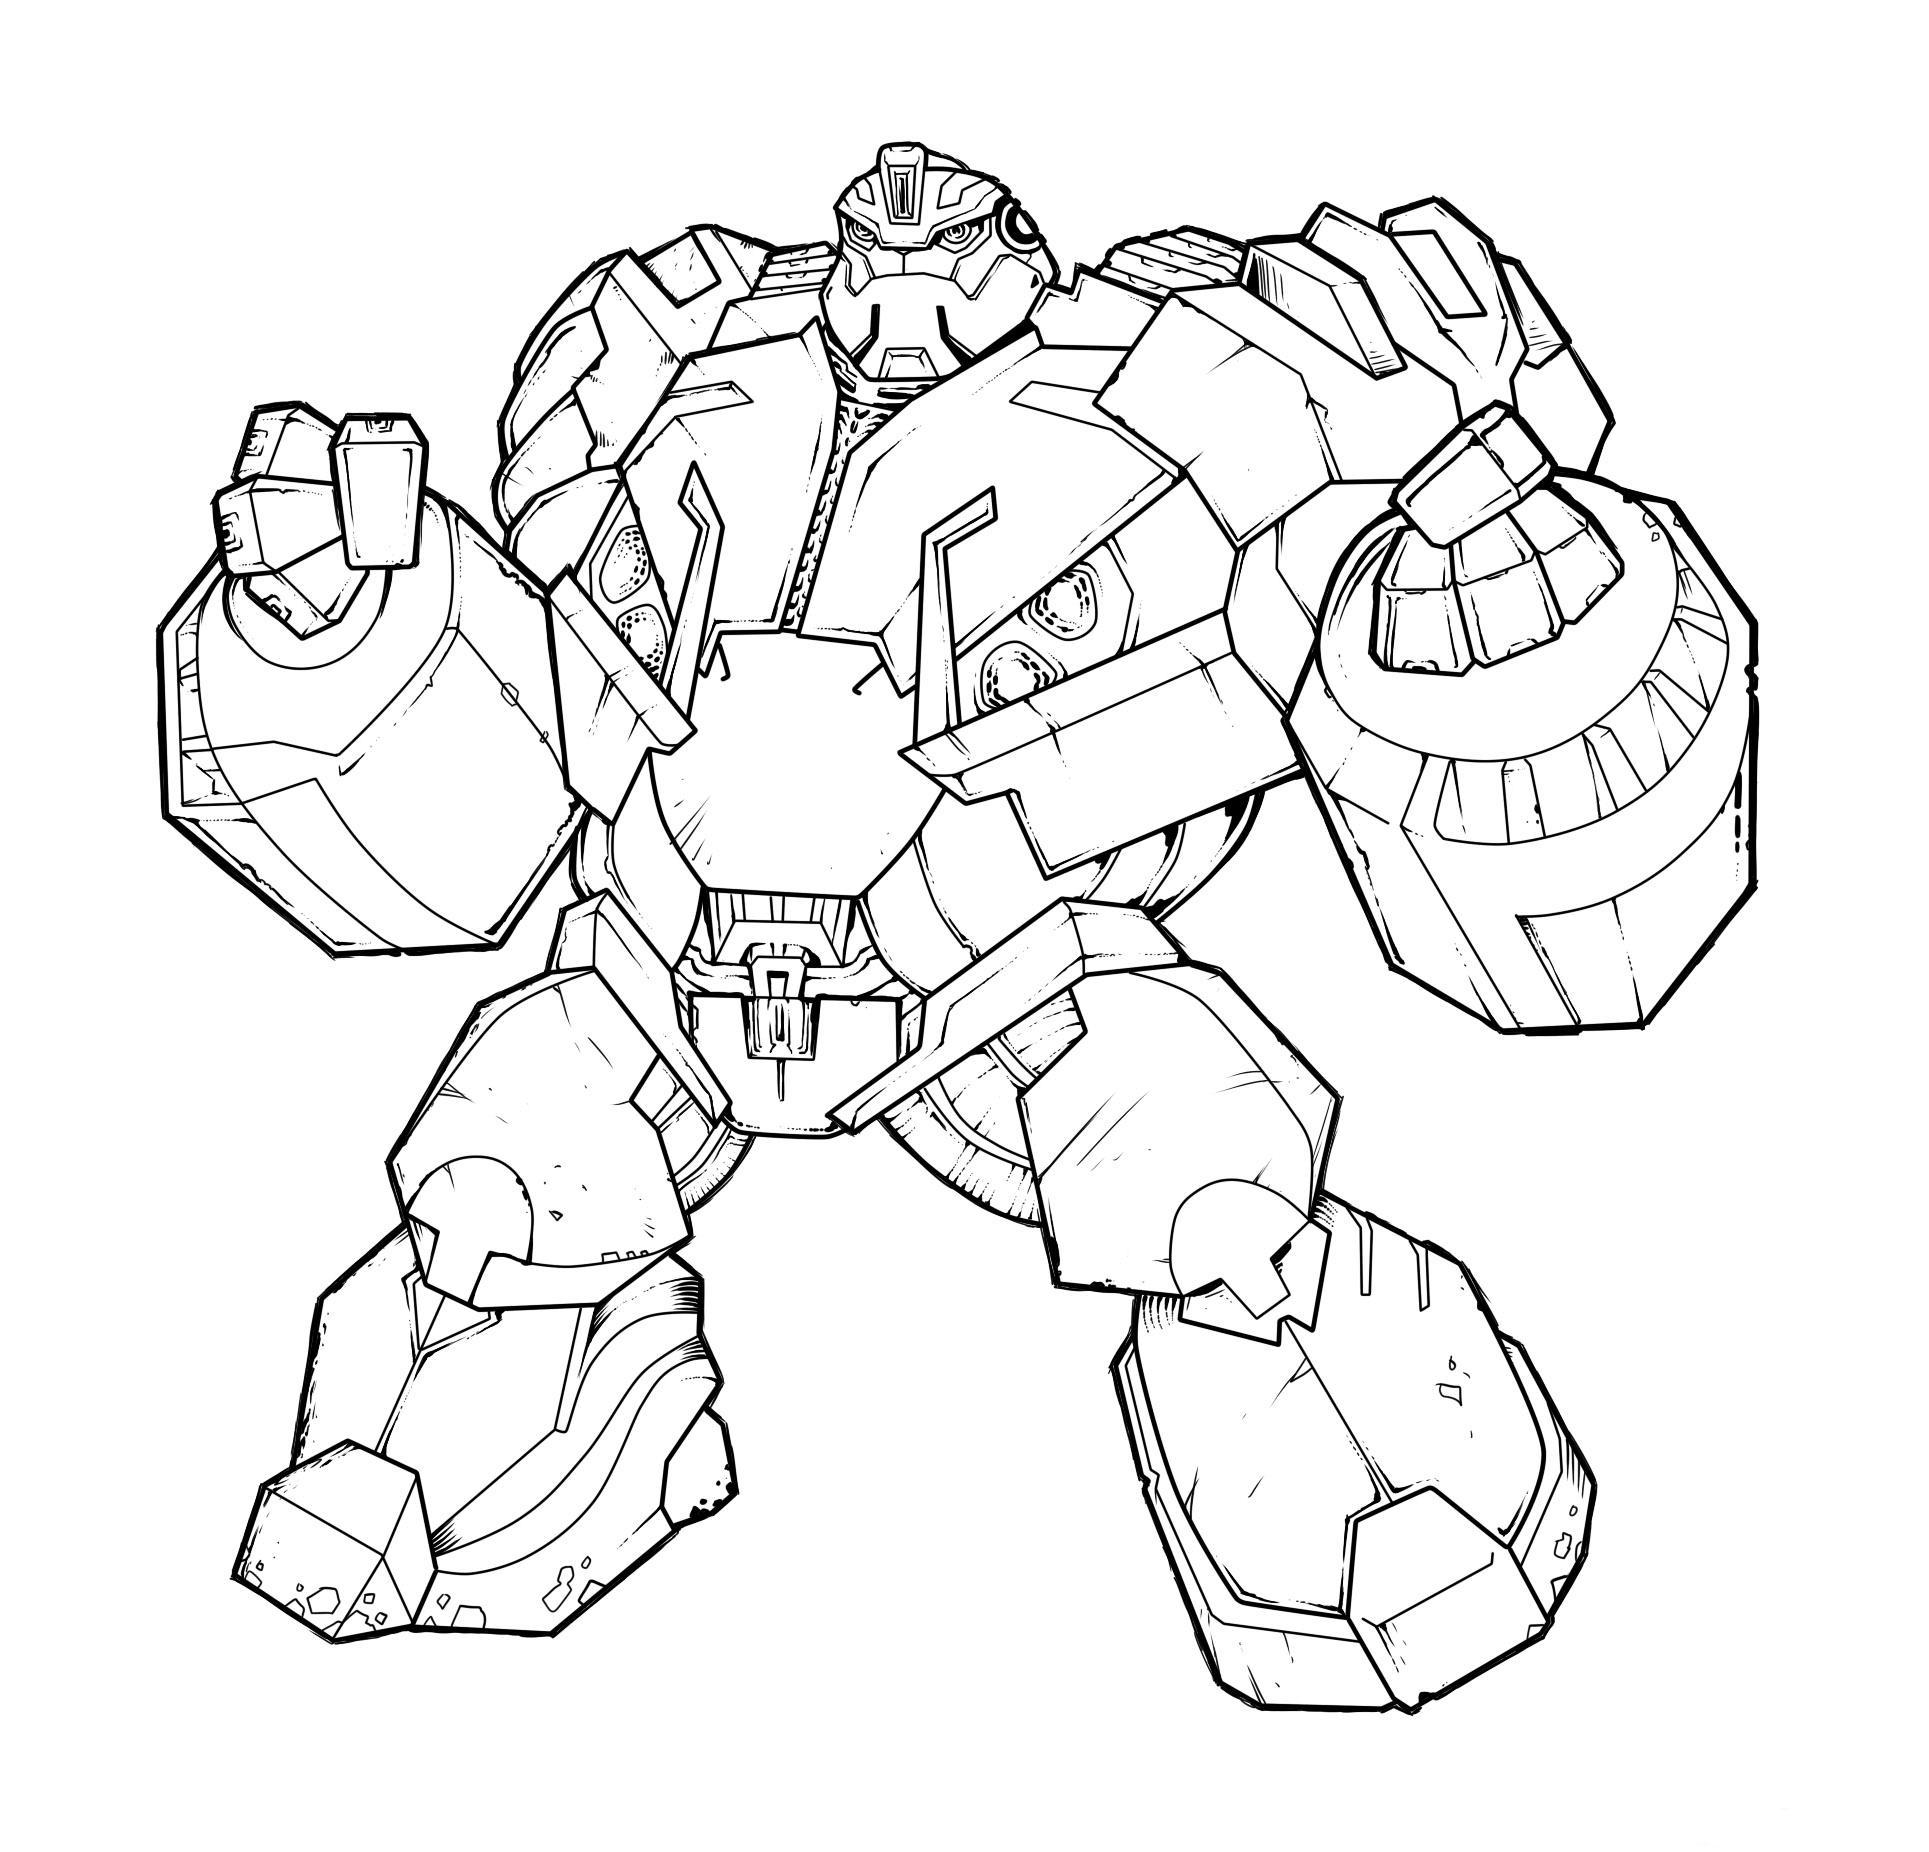 Bumblebee Transformers Coloring Pages - Coloring Home | 1852x1929